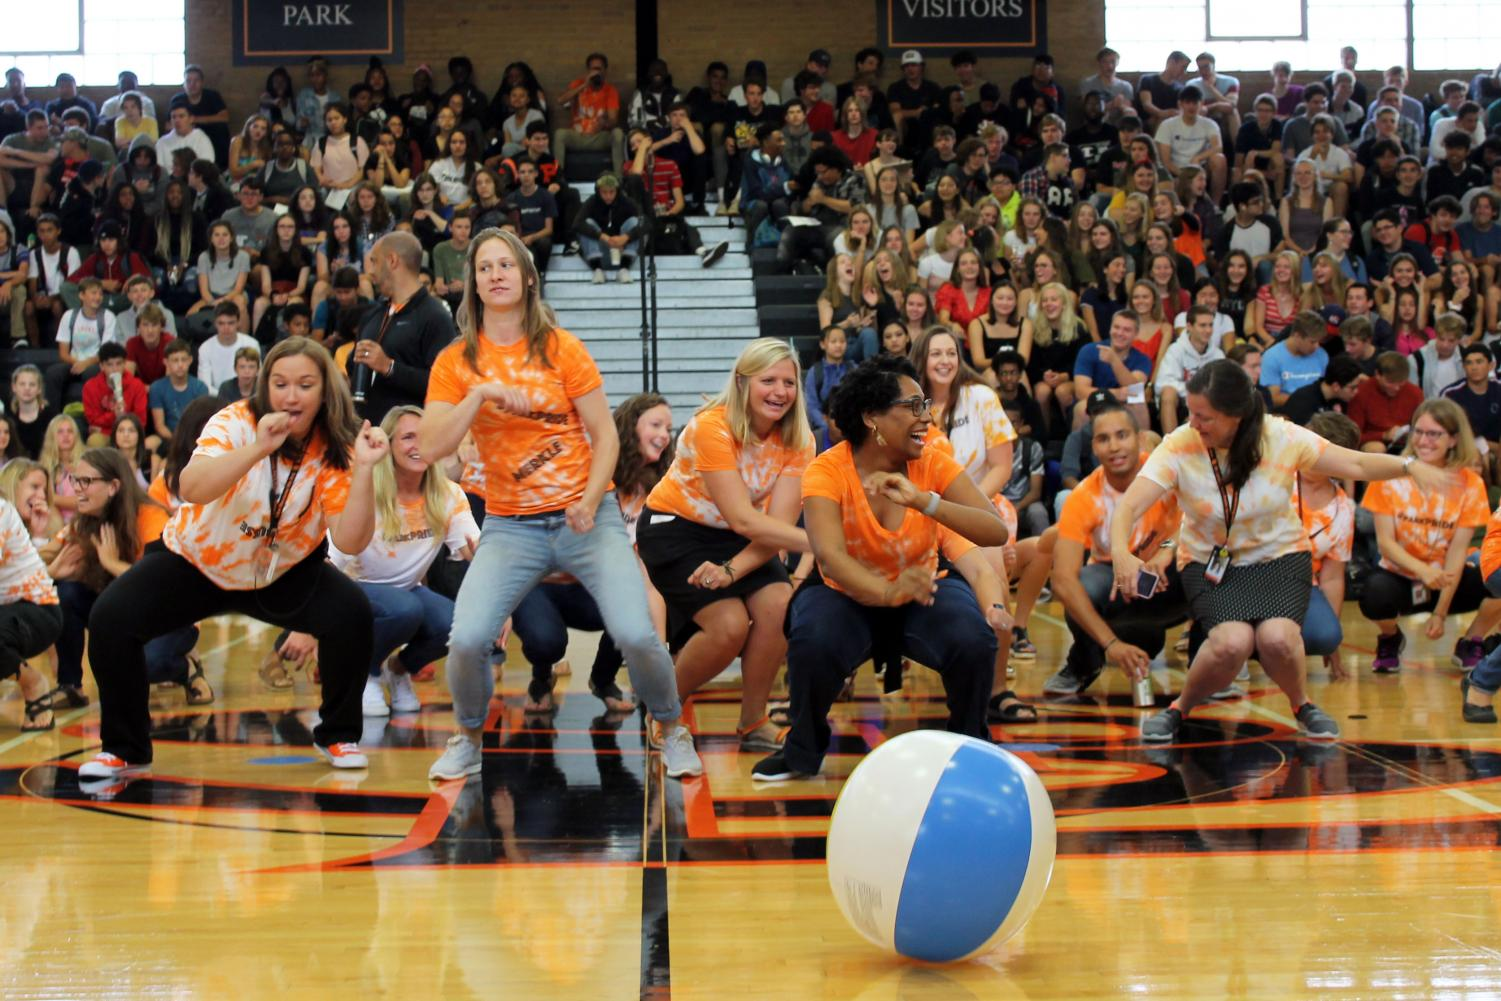 Teachers+dance+to+the+Cha-Cha+Slide+at+the+Pep+fest+Sept.+3.+The+show+was+put+on+for+incoming+freshmen+and+returning+students.